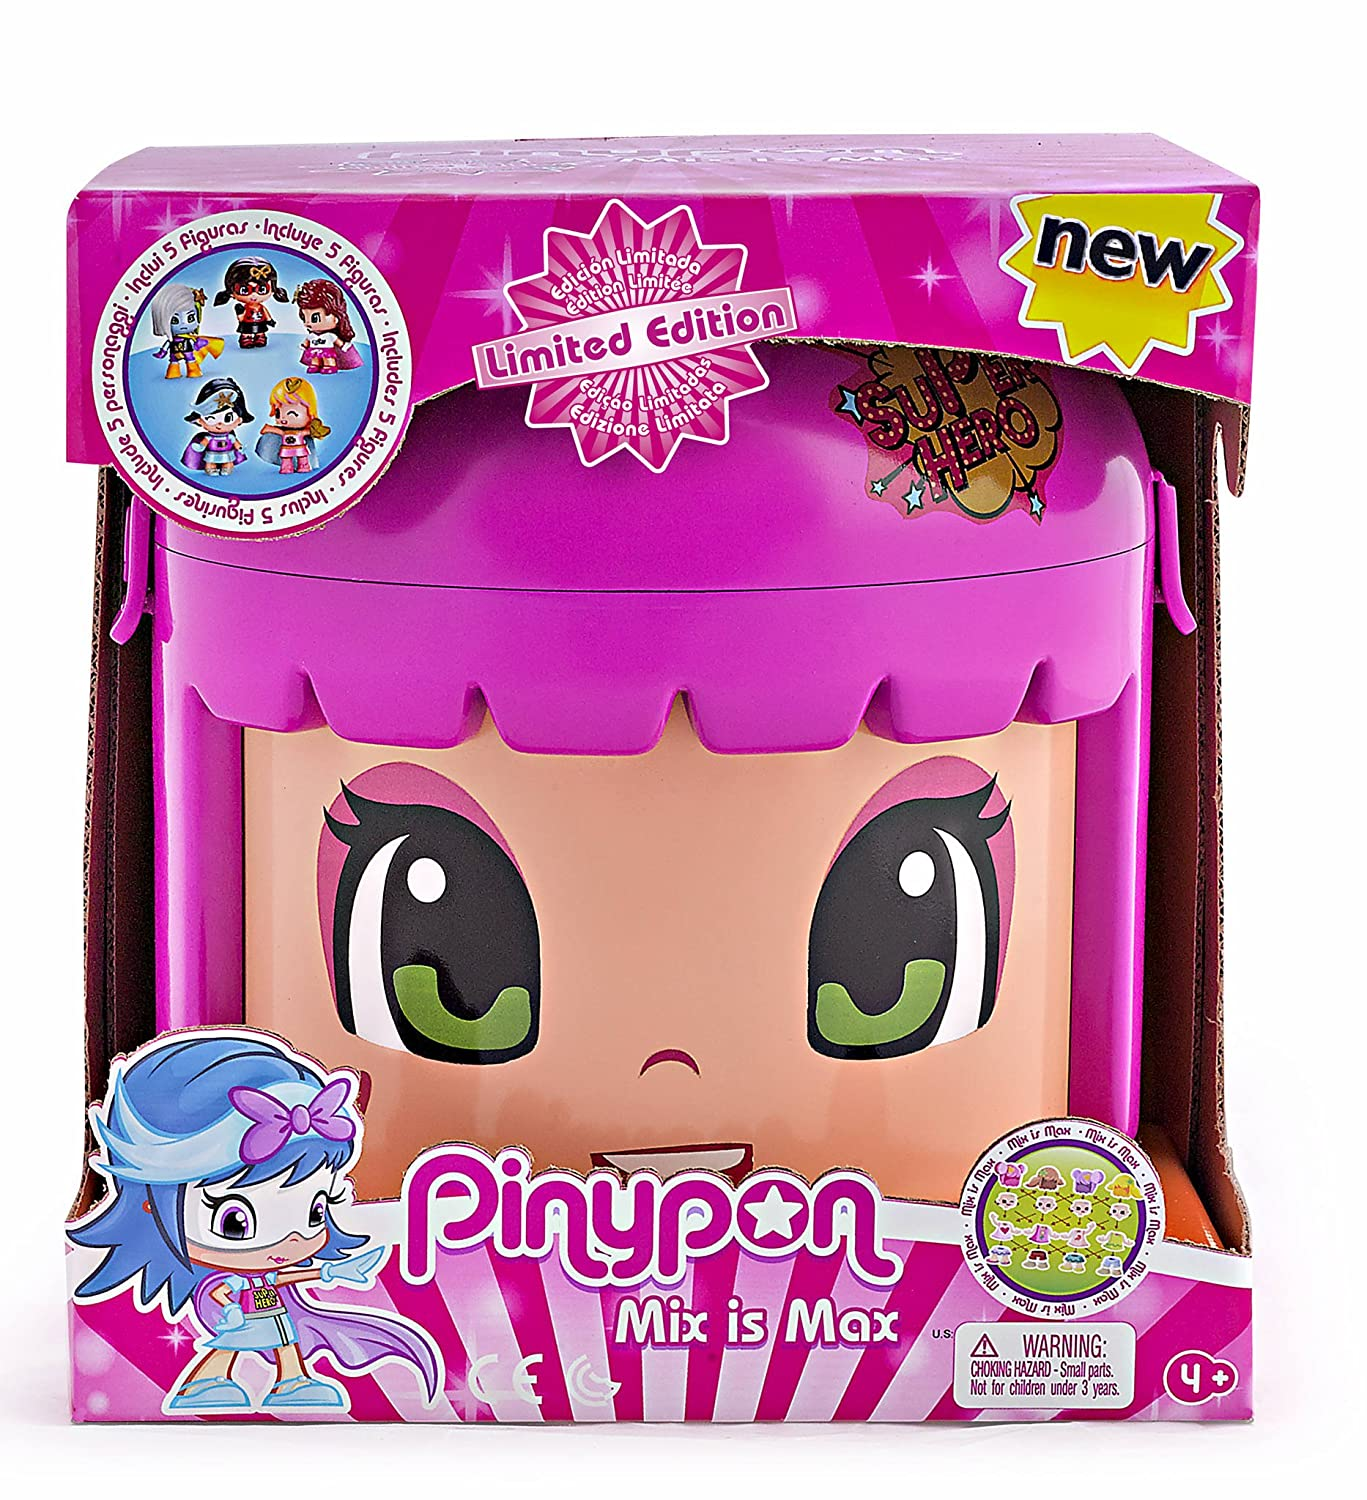 Pinypon Cubo Mix Is Max edición limitada de superhéroes Famosa